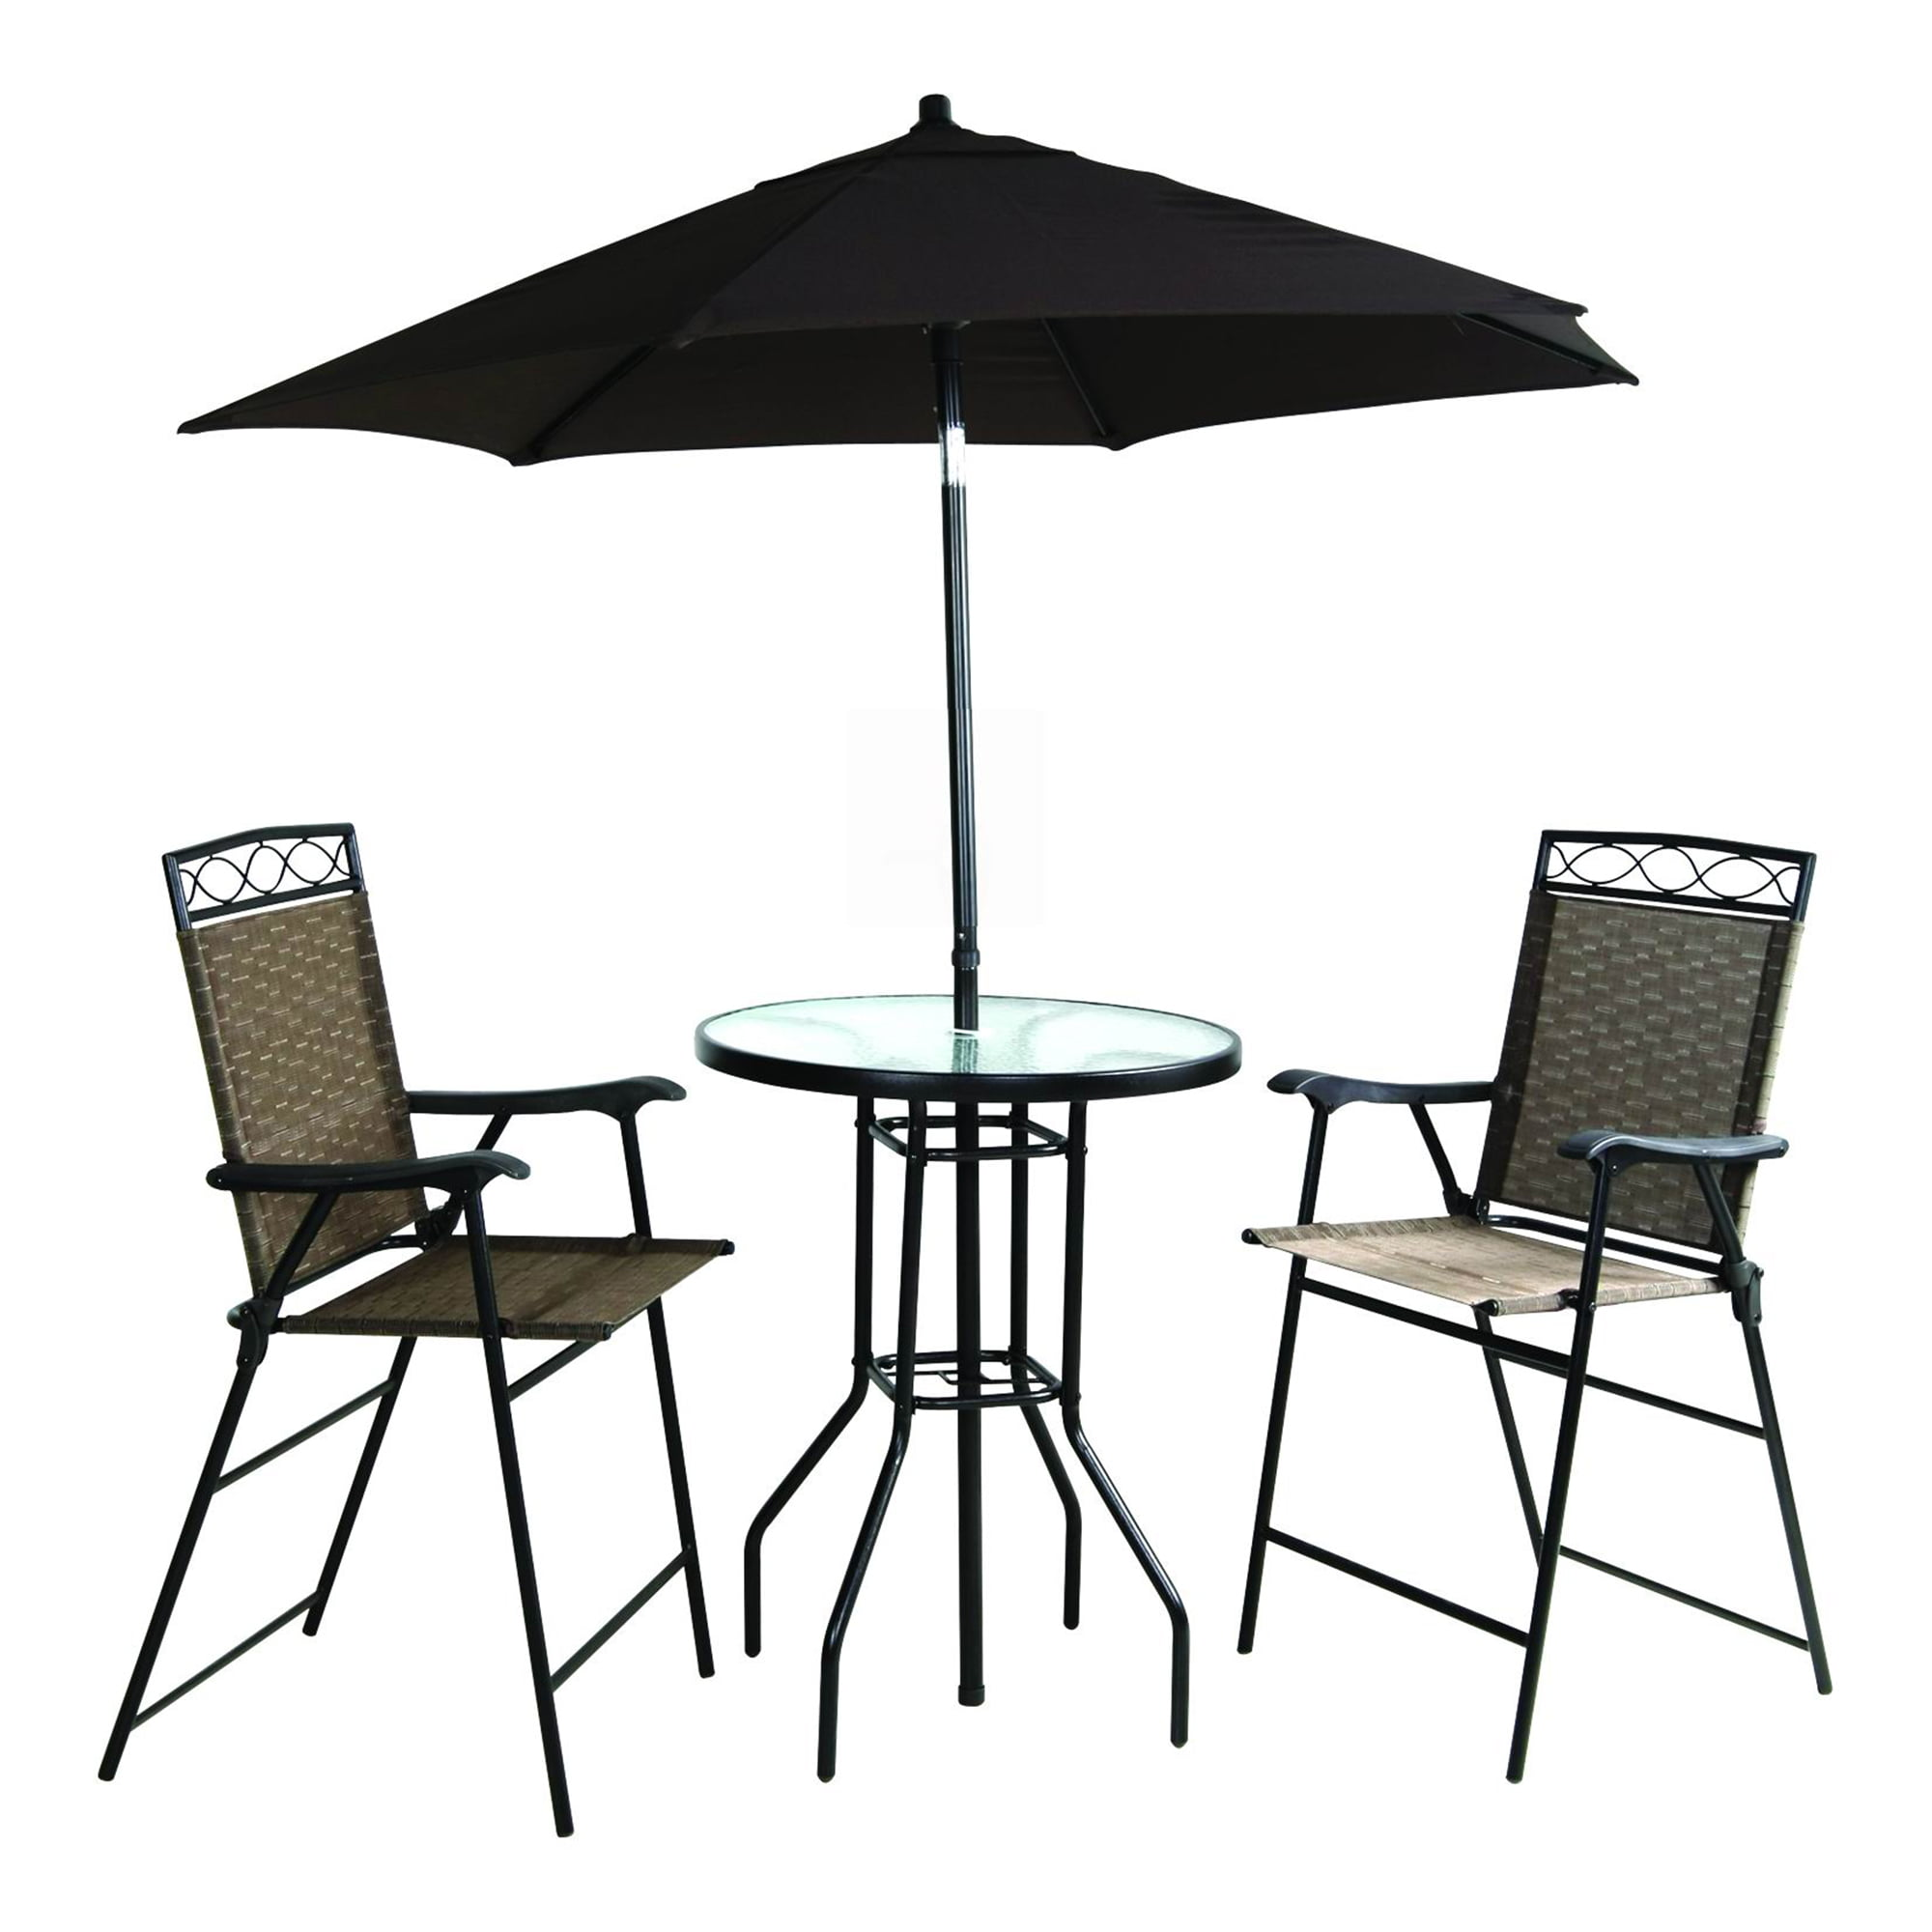 Four Piece Folding Bar Height Patio Set With Table And